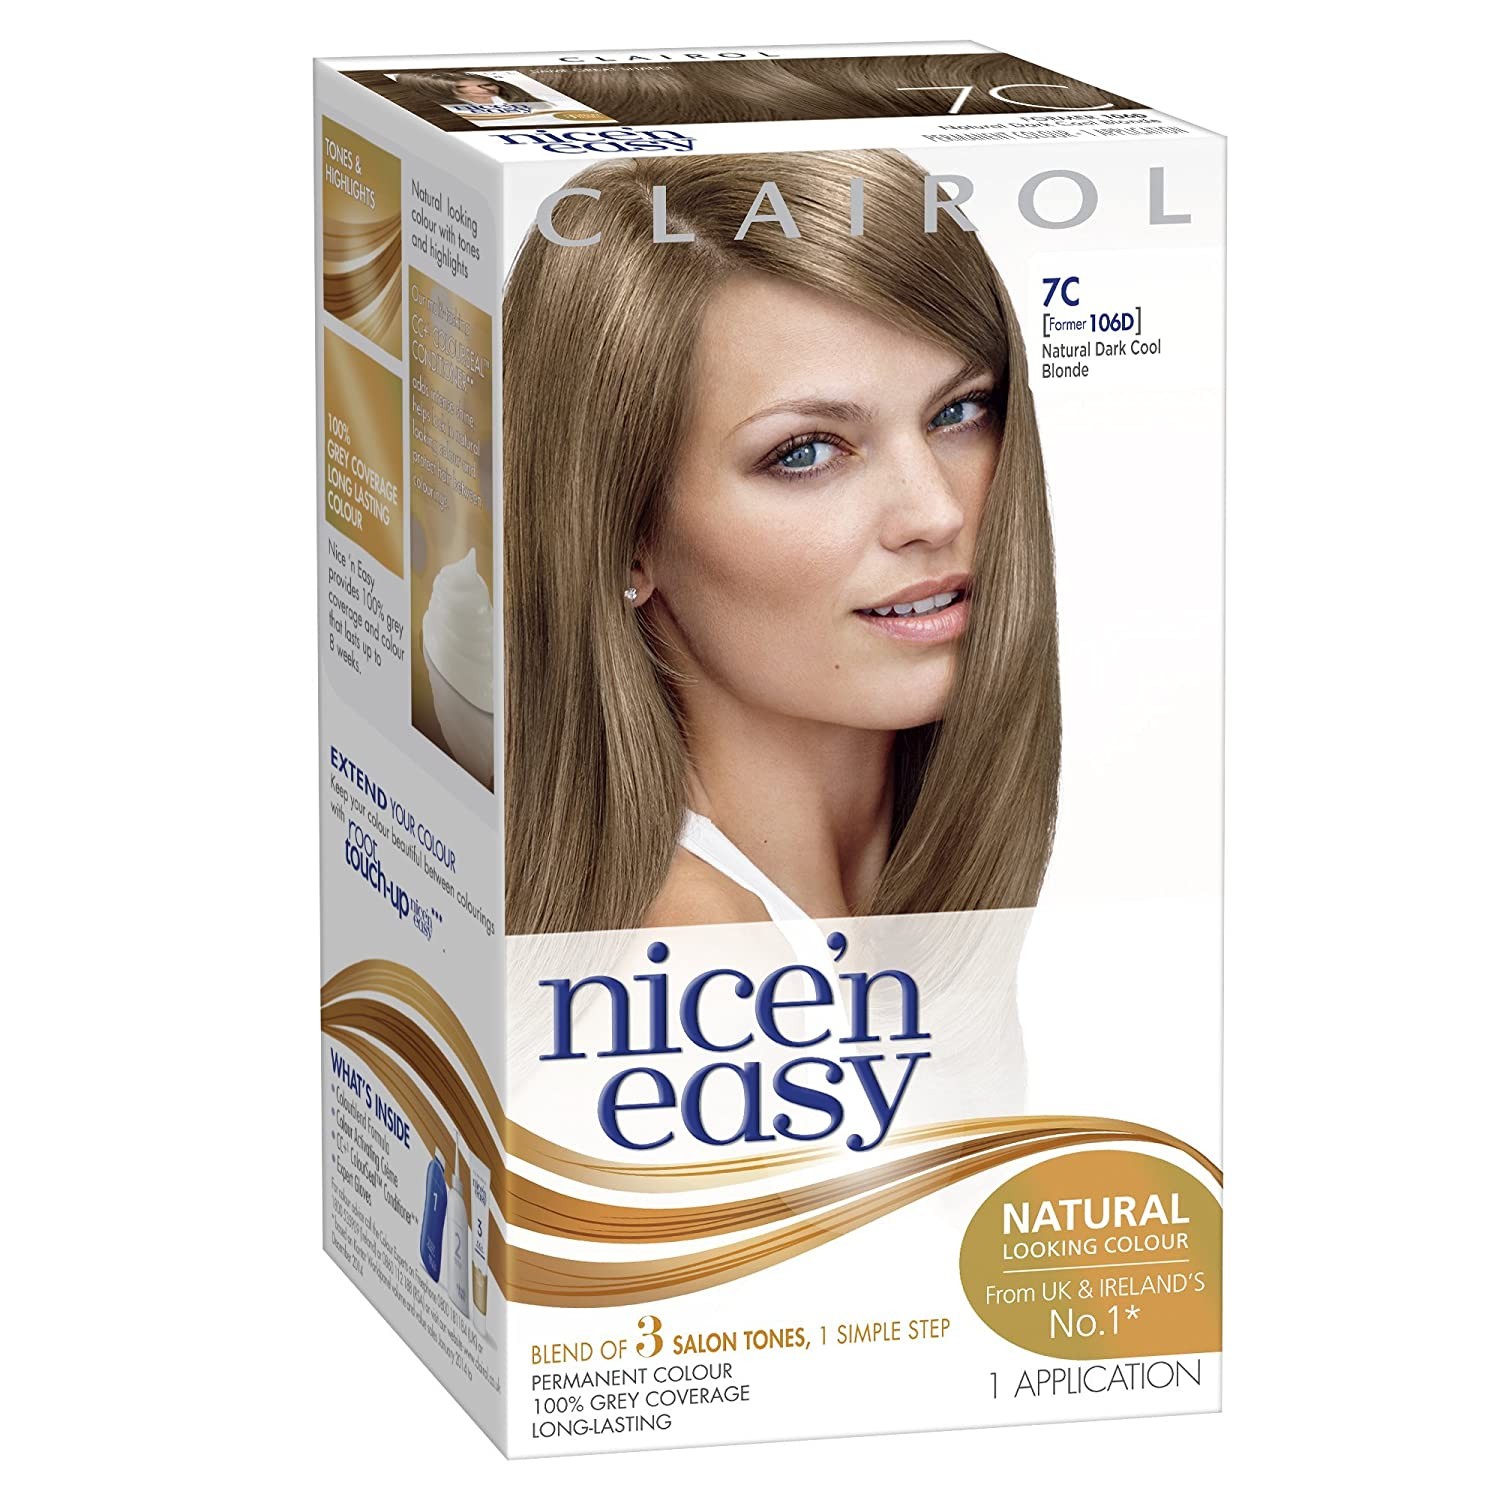 Amazon clairol nice n easy hair color natural dark cool amazon clairol nice n easy hair color natural dark cool blonde 106d chemical hair dyes beauty solutioingenieria Images